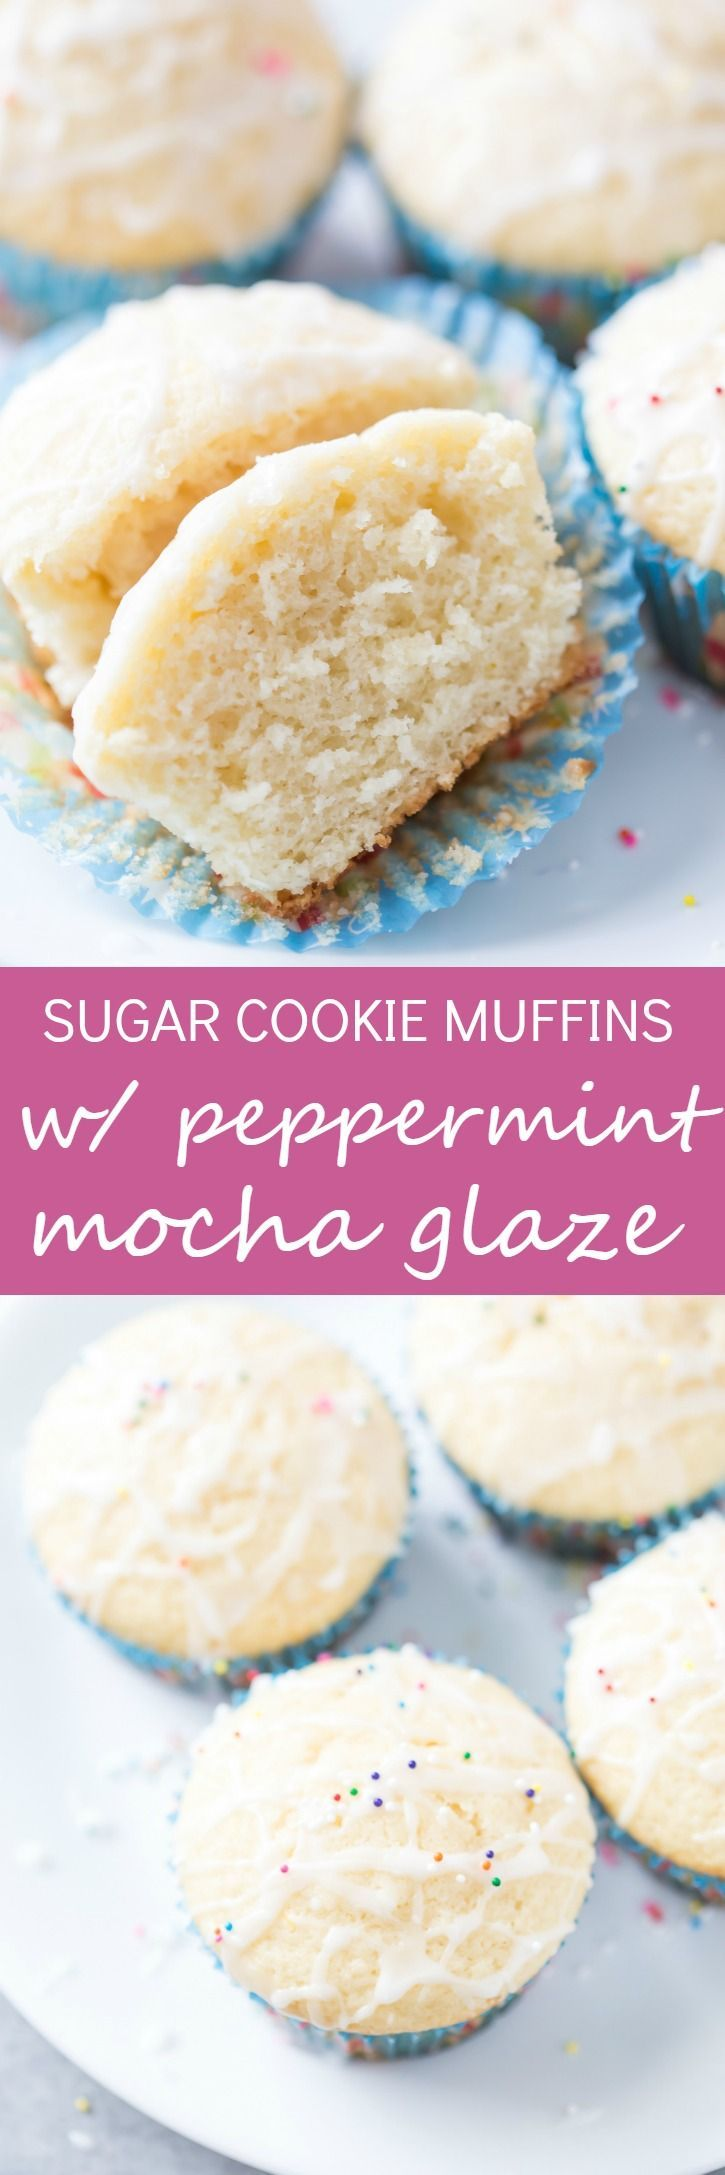 Soft and fluffy Sugar Cookie Muffins with Peppermint Mocha Glaze are so easy! They are perfect for the holidays and even for a quick on-the-go breakfast. These are the muffins you have always been searching for and need!  via @galmission